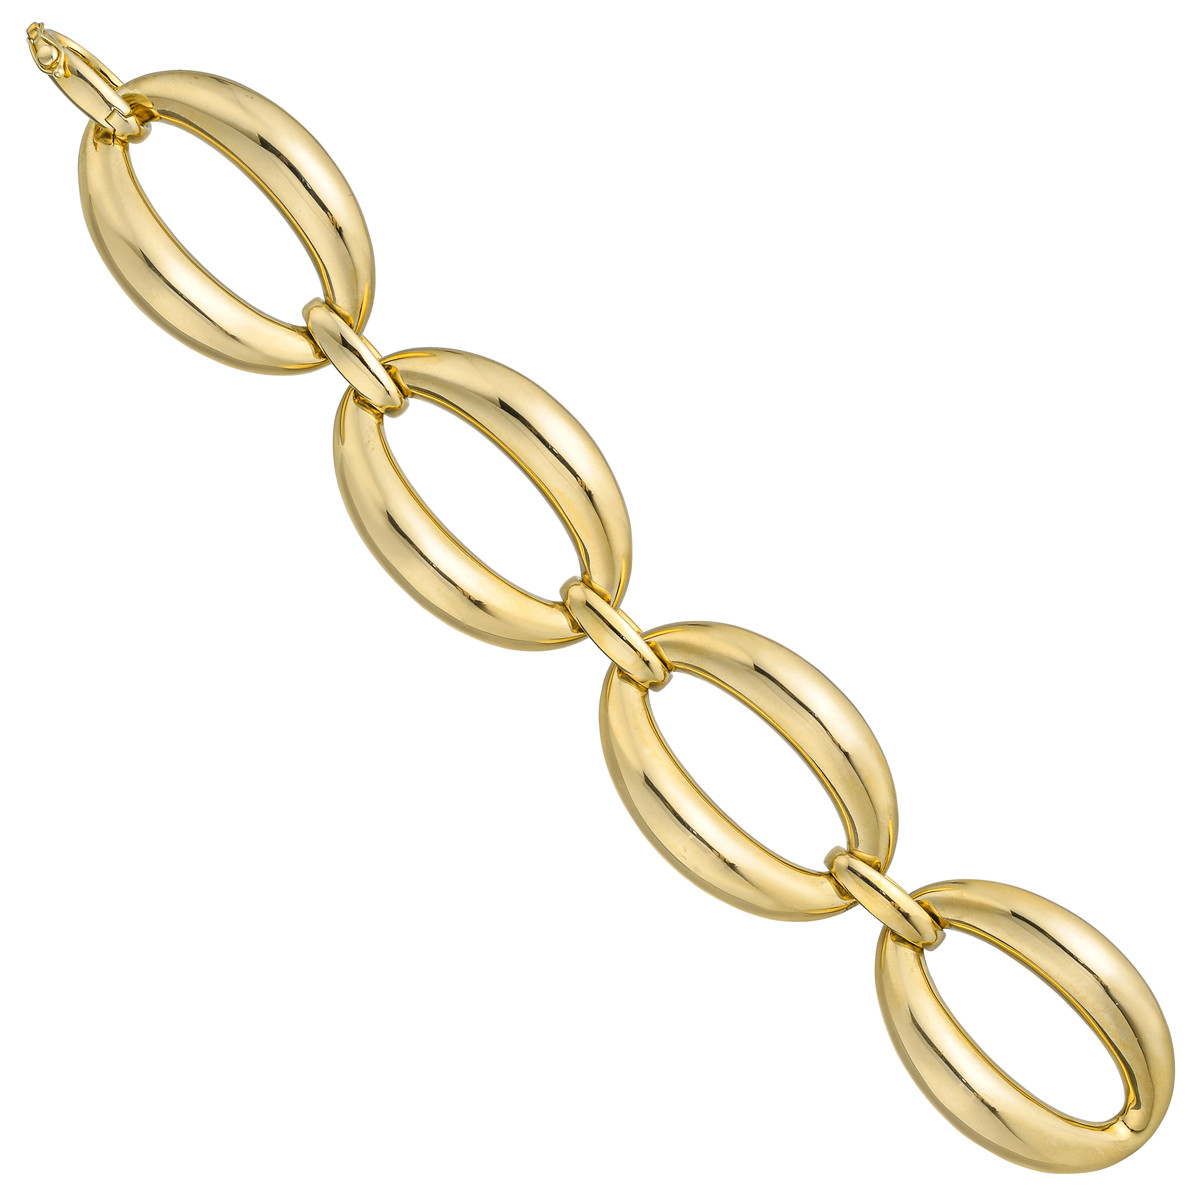 18k Yellow Gold Large Oval Four Link Bracelet